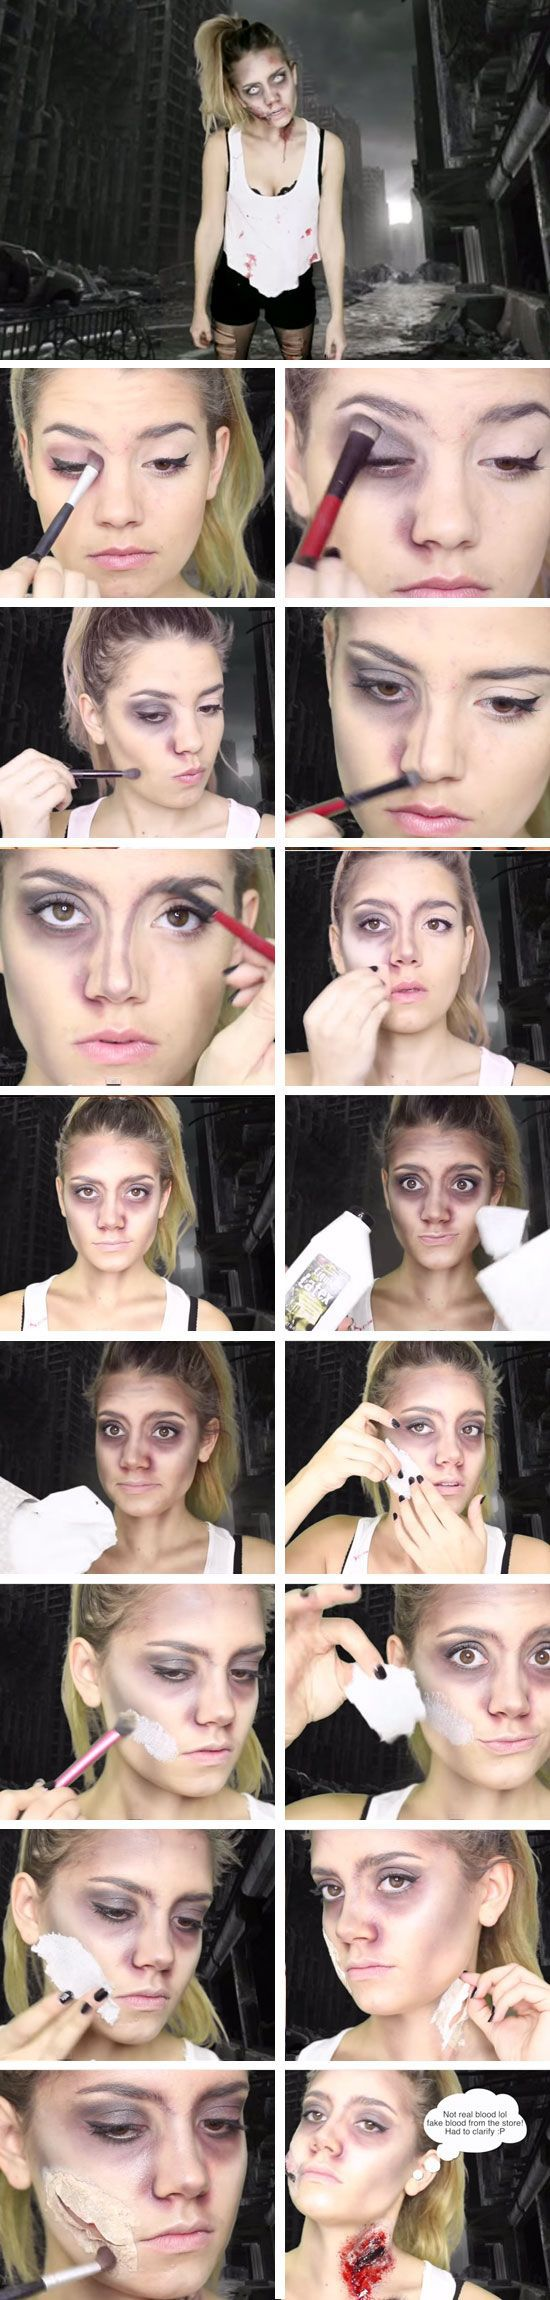 17 Halloween Makeup Tutorials So Cool You Won't Even Need A Costume